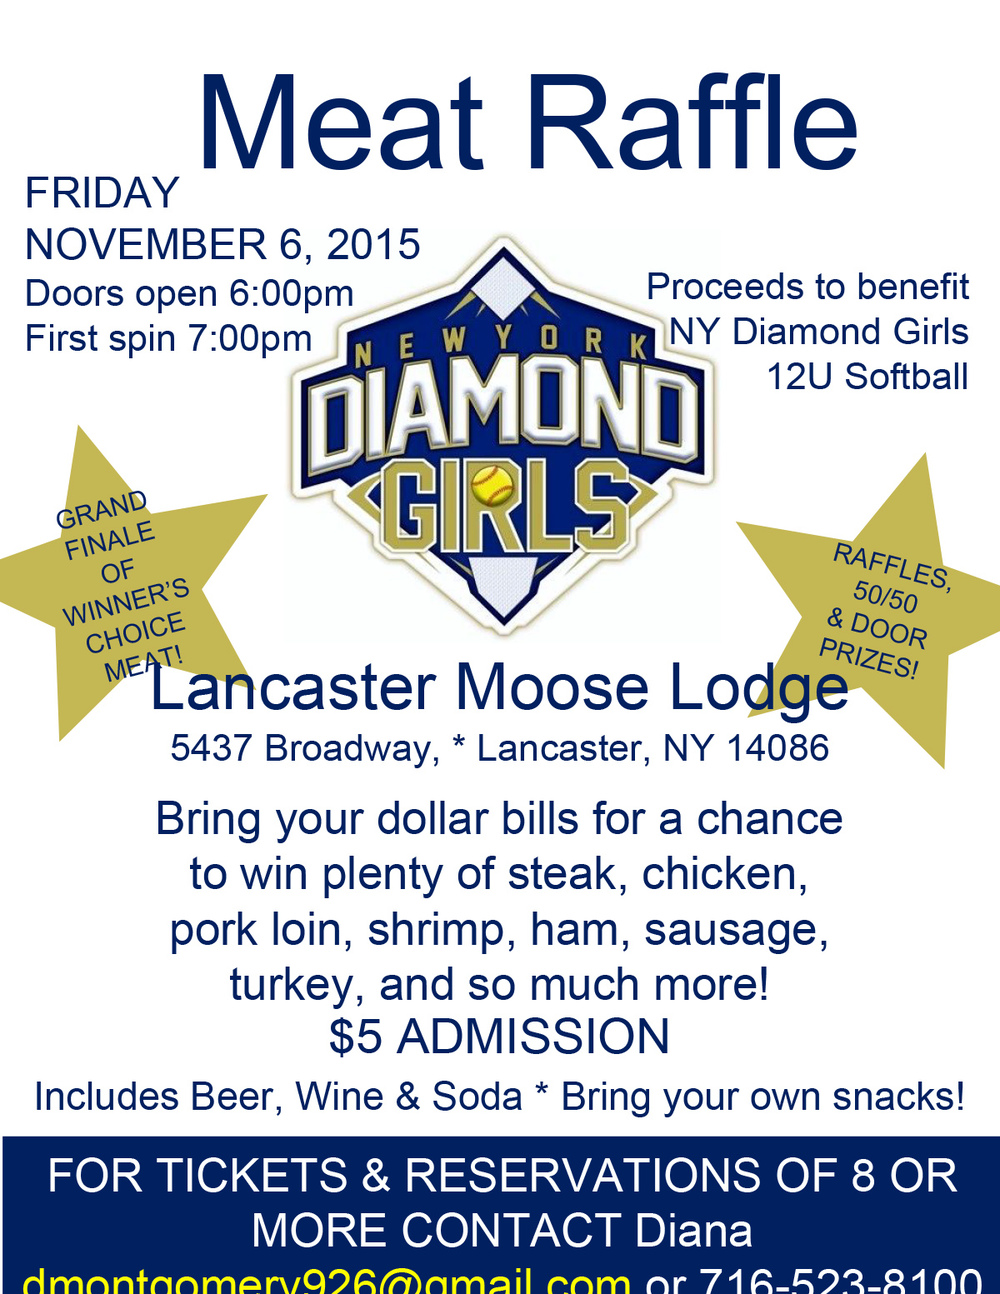 ny diamond girls u softball meat raffle com meat raffle flyer 2015 2 pptx jpg